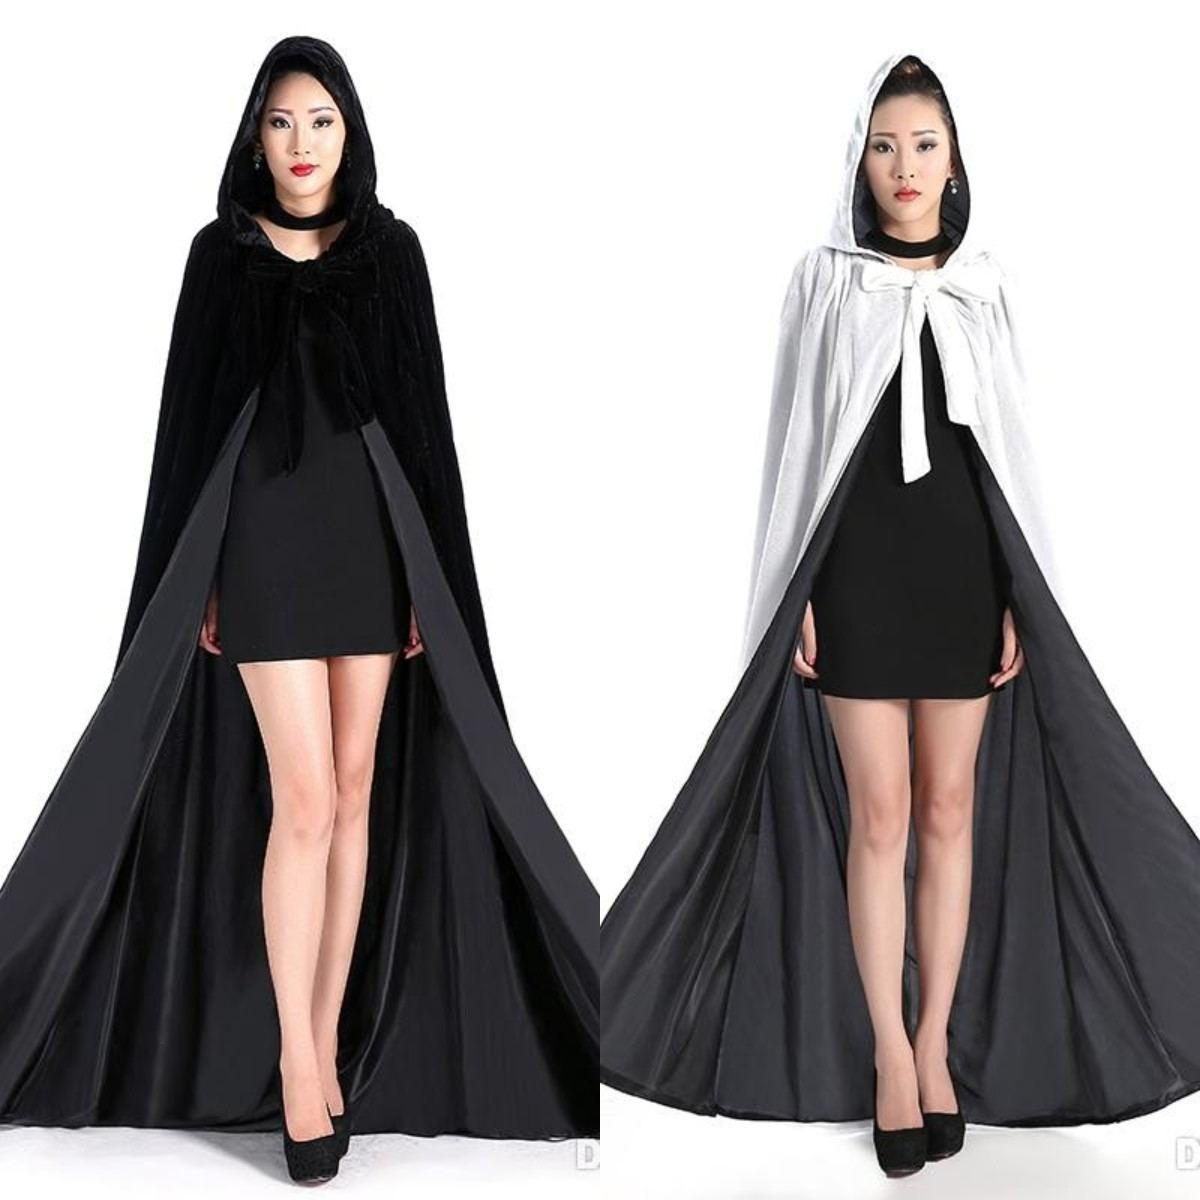 2021 Cheap Velvet Hooded Cloaks Winter Wedding Capes Wicca Robe Warm Christmas Long Bridal Wraps S-6XL